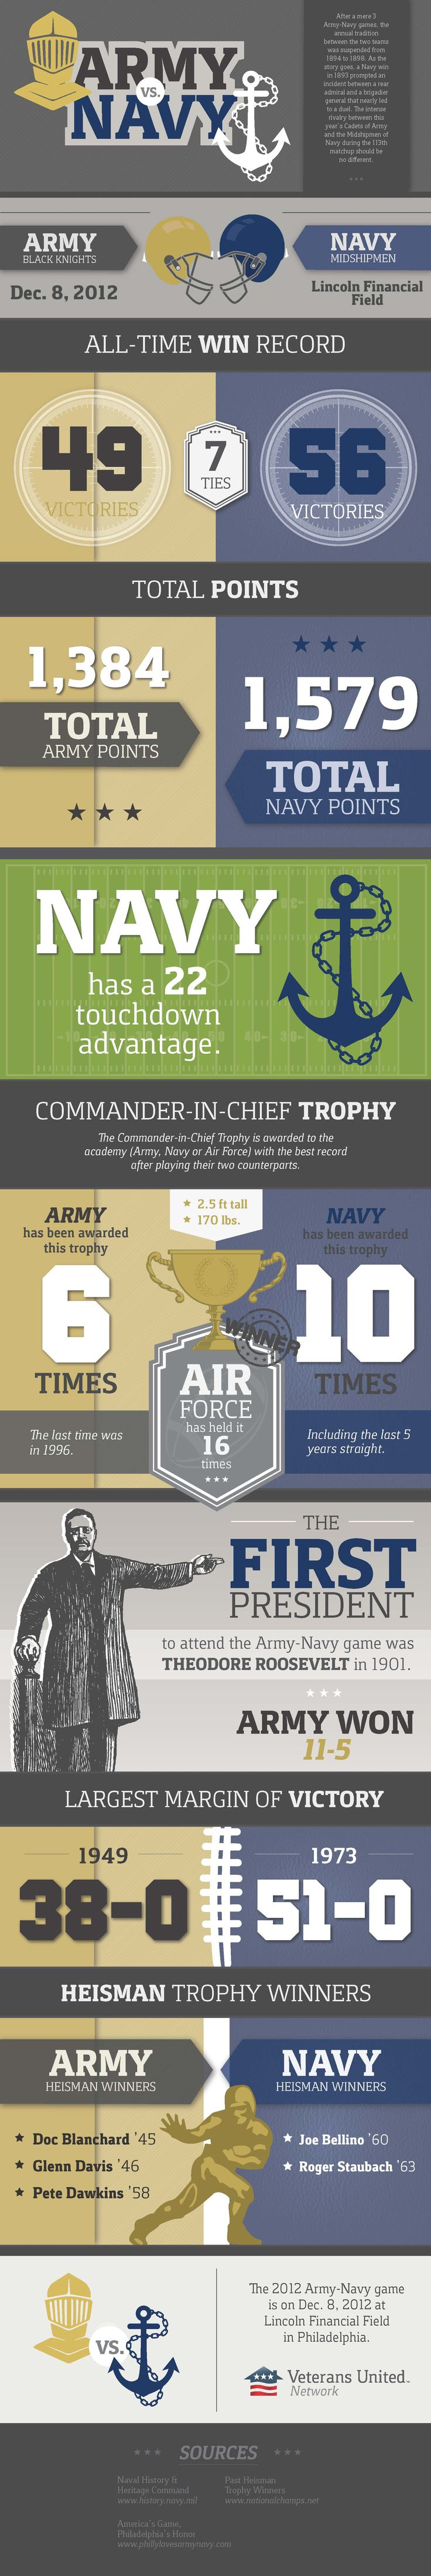 The Army vs. Navy football game is celebrated as one of the most historic rivalries in all of college football. GO NAVY!!!!